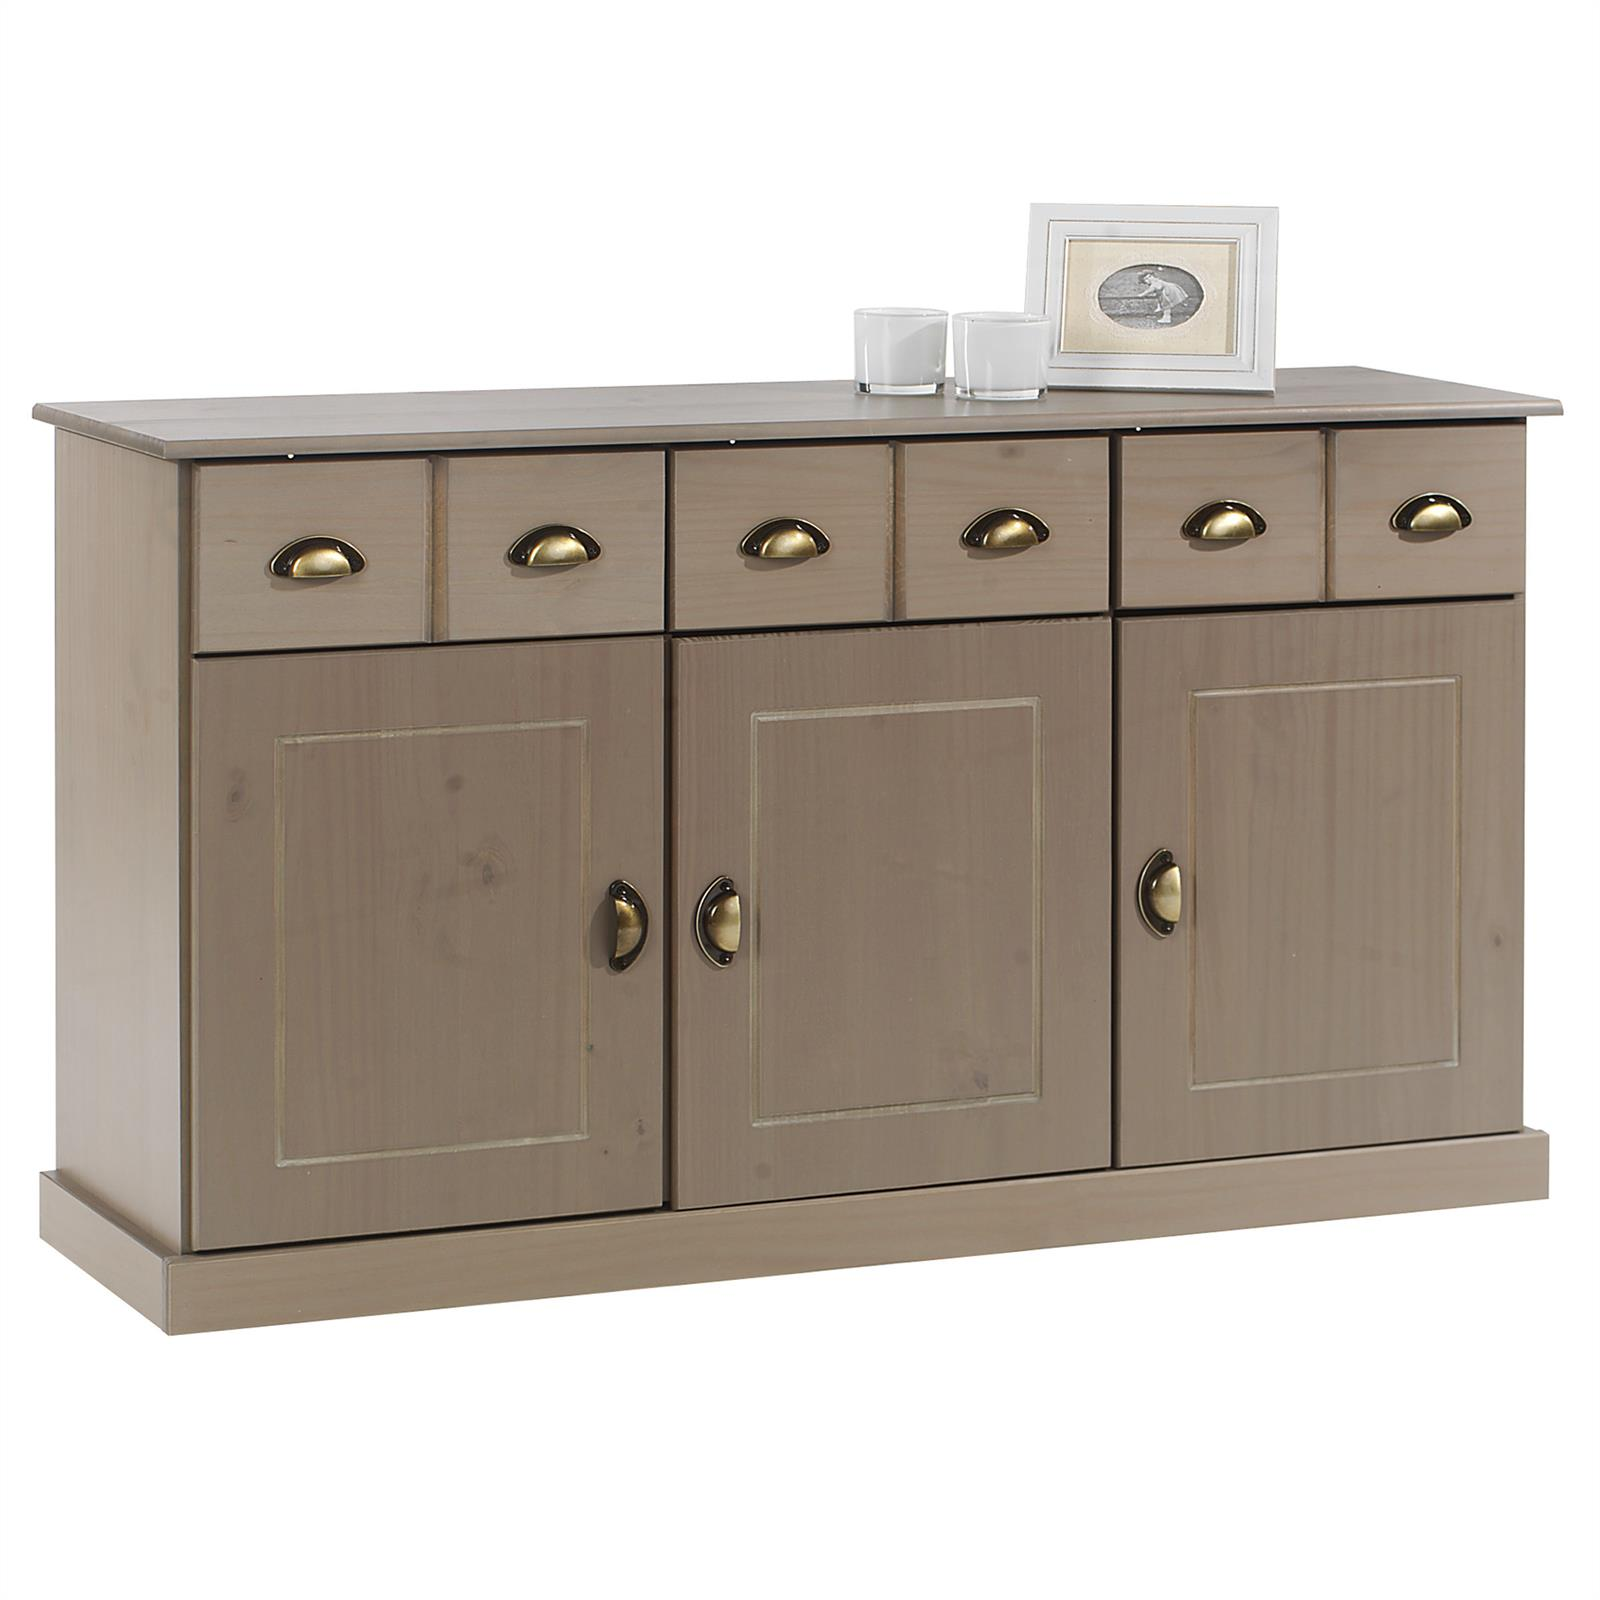 anrichte kommode apothekerschrank apothekerkommode sideboard mit 3 schubladen ebay. Black Bedroom Furniture Sets. Home Design Ideas